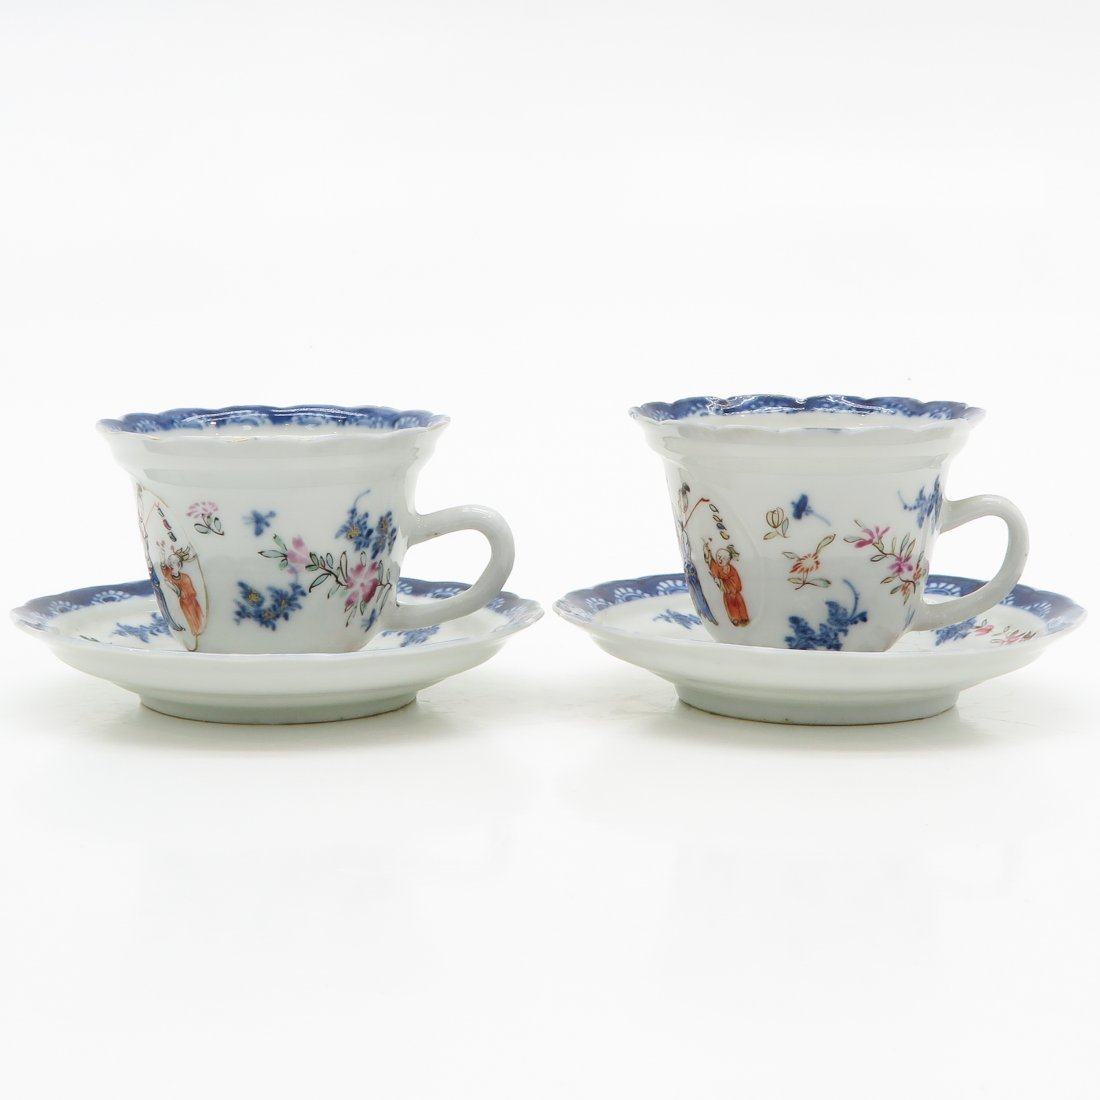 18th Century China Porcelain Cups and Saucers